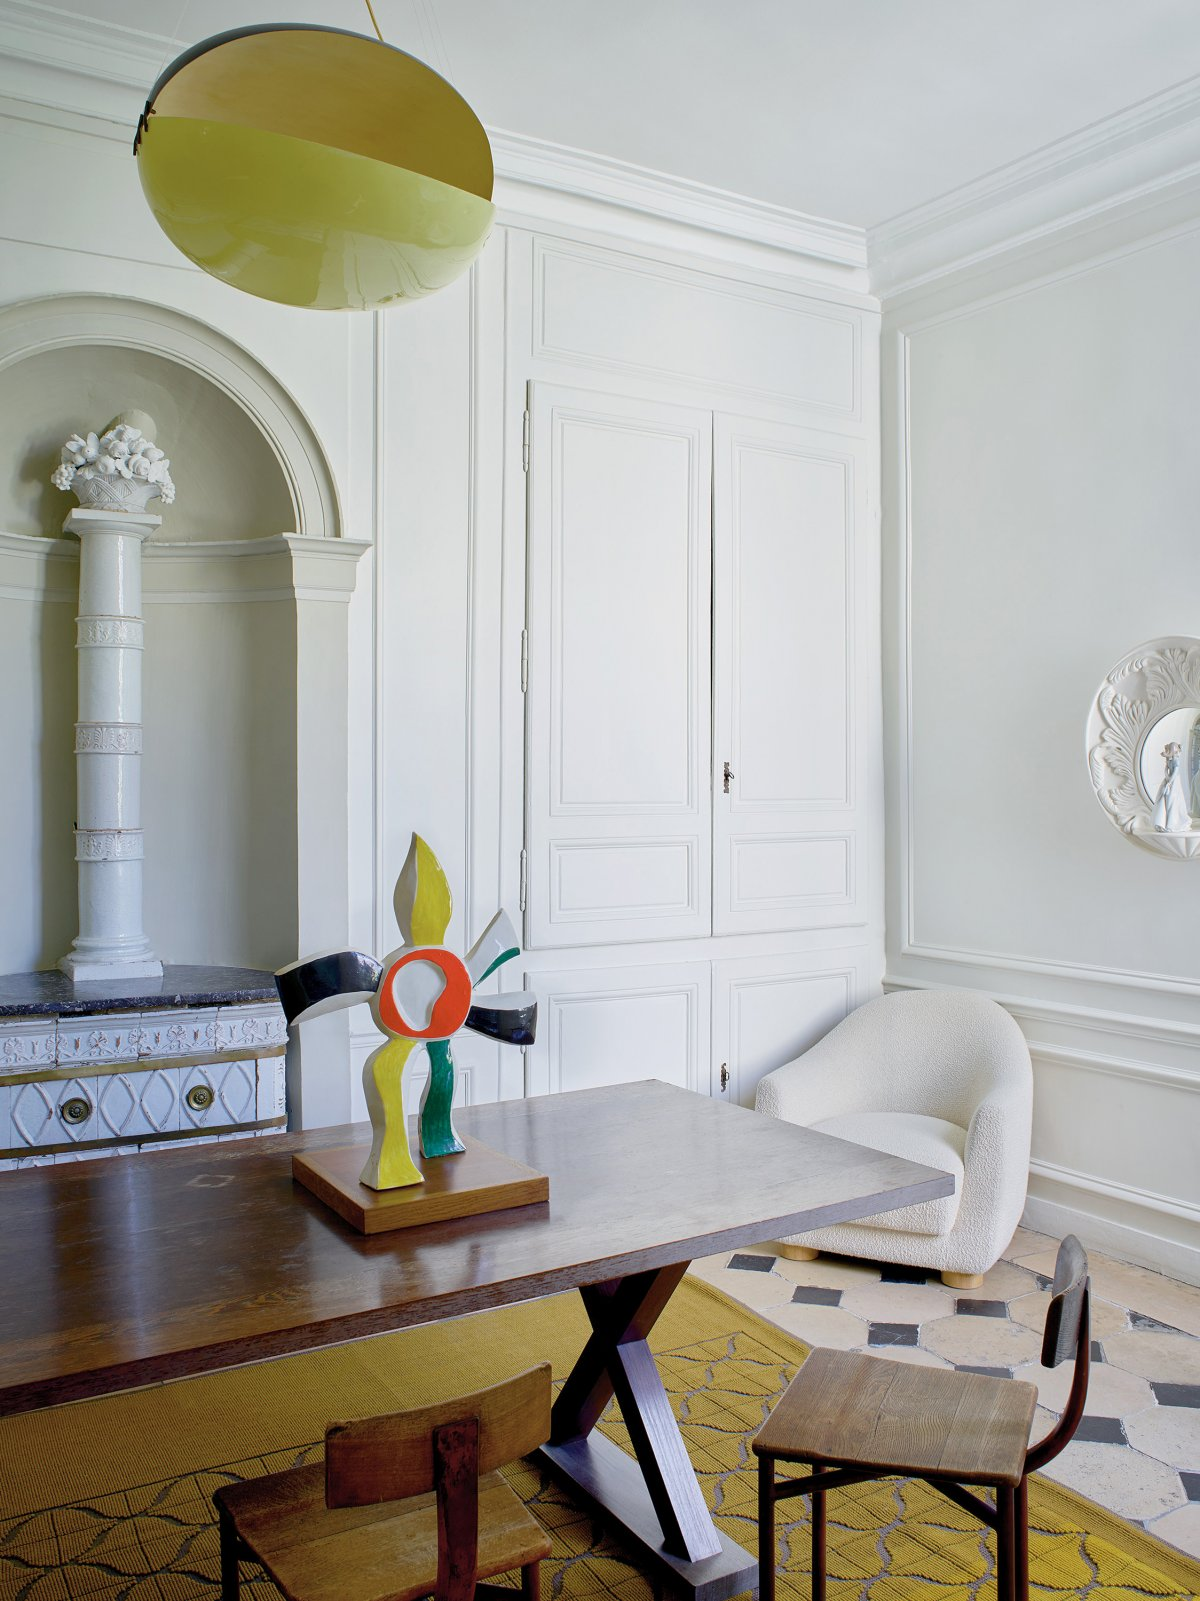 The Home of French Designer Charles Zana